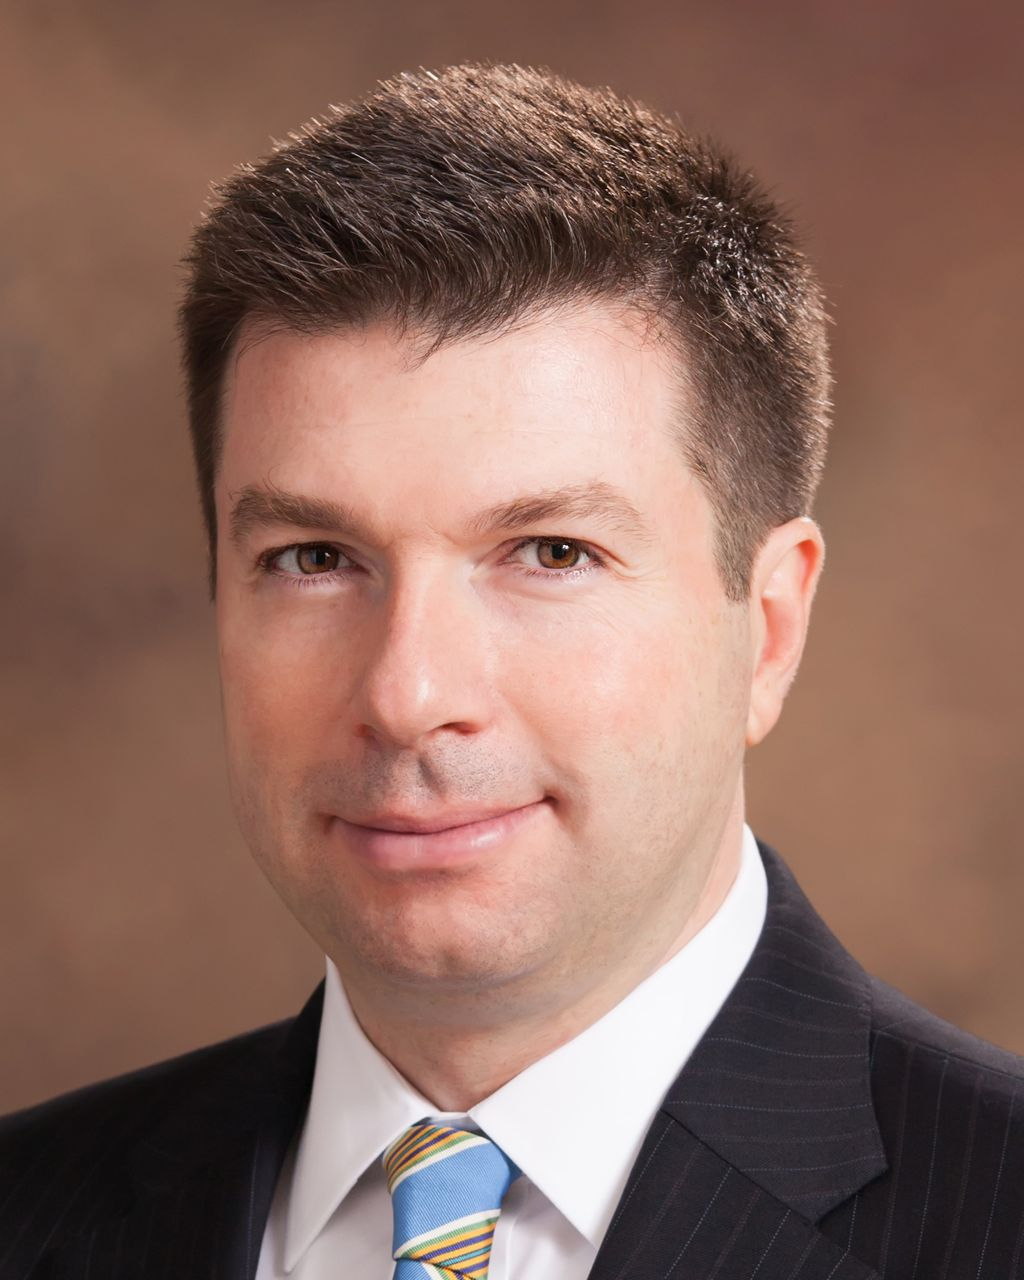 Patrick Cote, financial advisor Stoughton MA